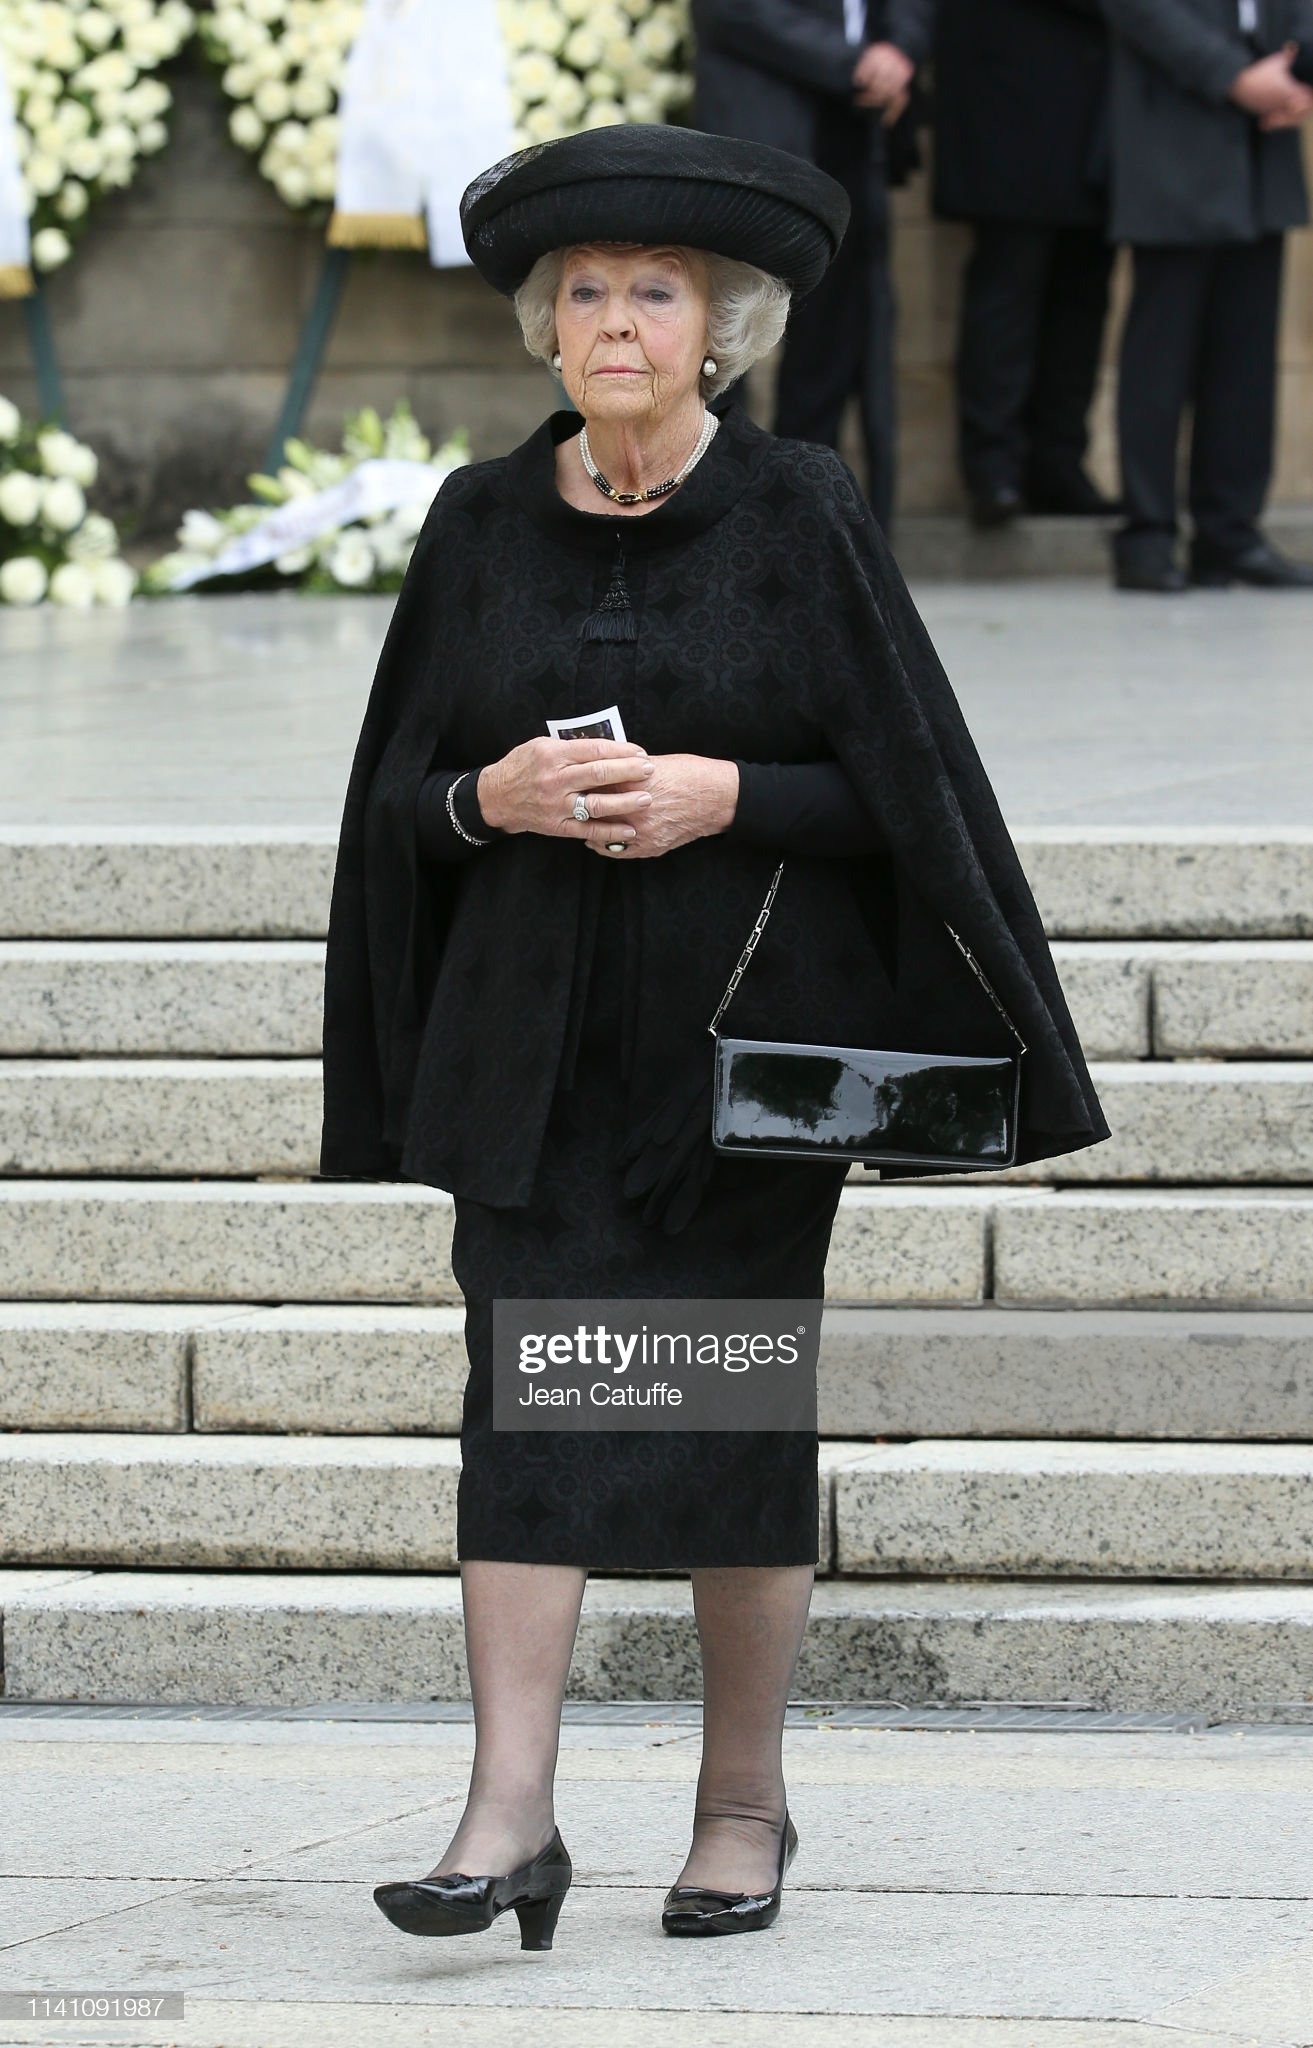 Похороны Великого Герцога Жана https://media.gettyimages.com/photos/princess-beatrix-of-the-netherlands-leaves-the-funeral-of-grand-duke-picture-id1141091987?s=2048x2048